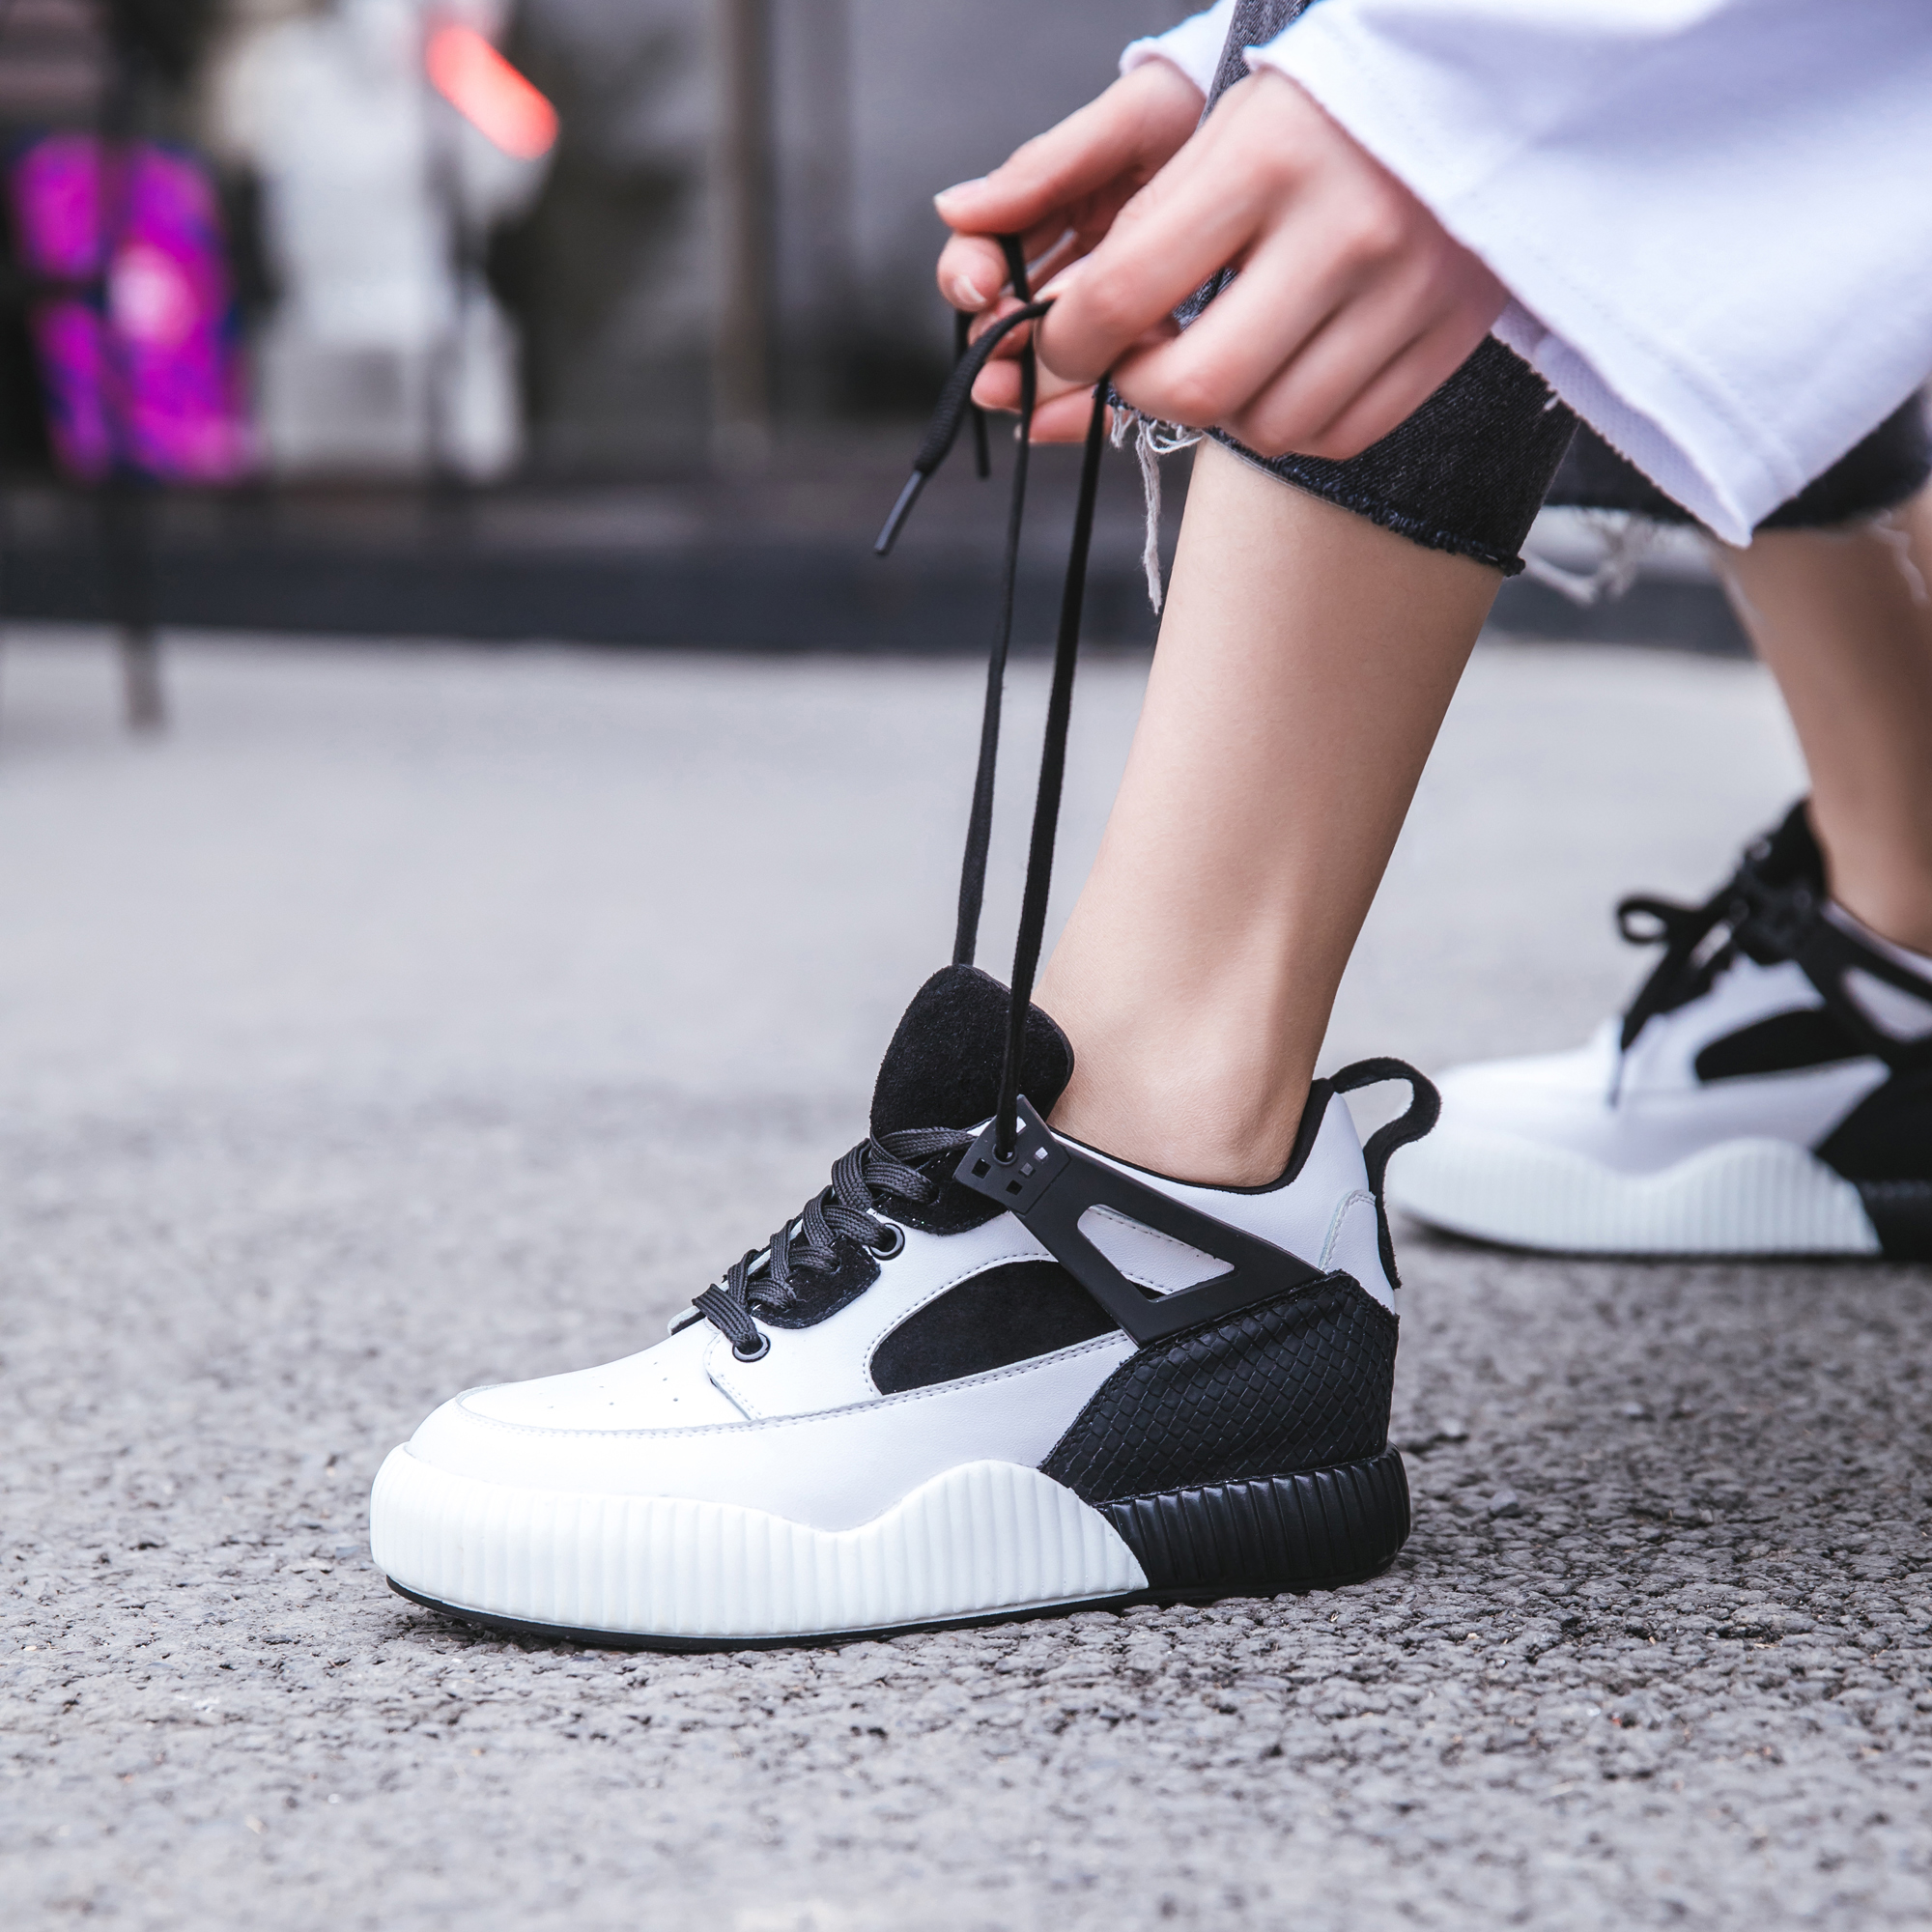 2018 NEW Women's Sneakers Pink Black Lace Up Leather Women Casual Shoes Zapatillas Deportivas Mujer Casual 35-42 3cm цены онлайн